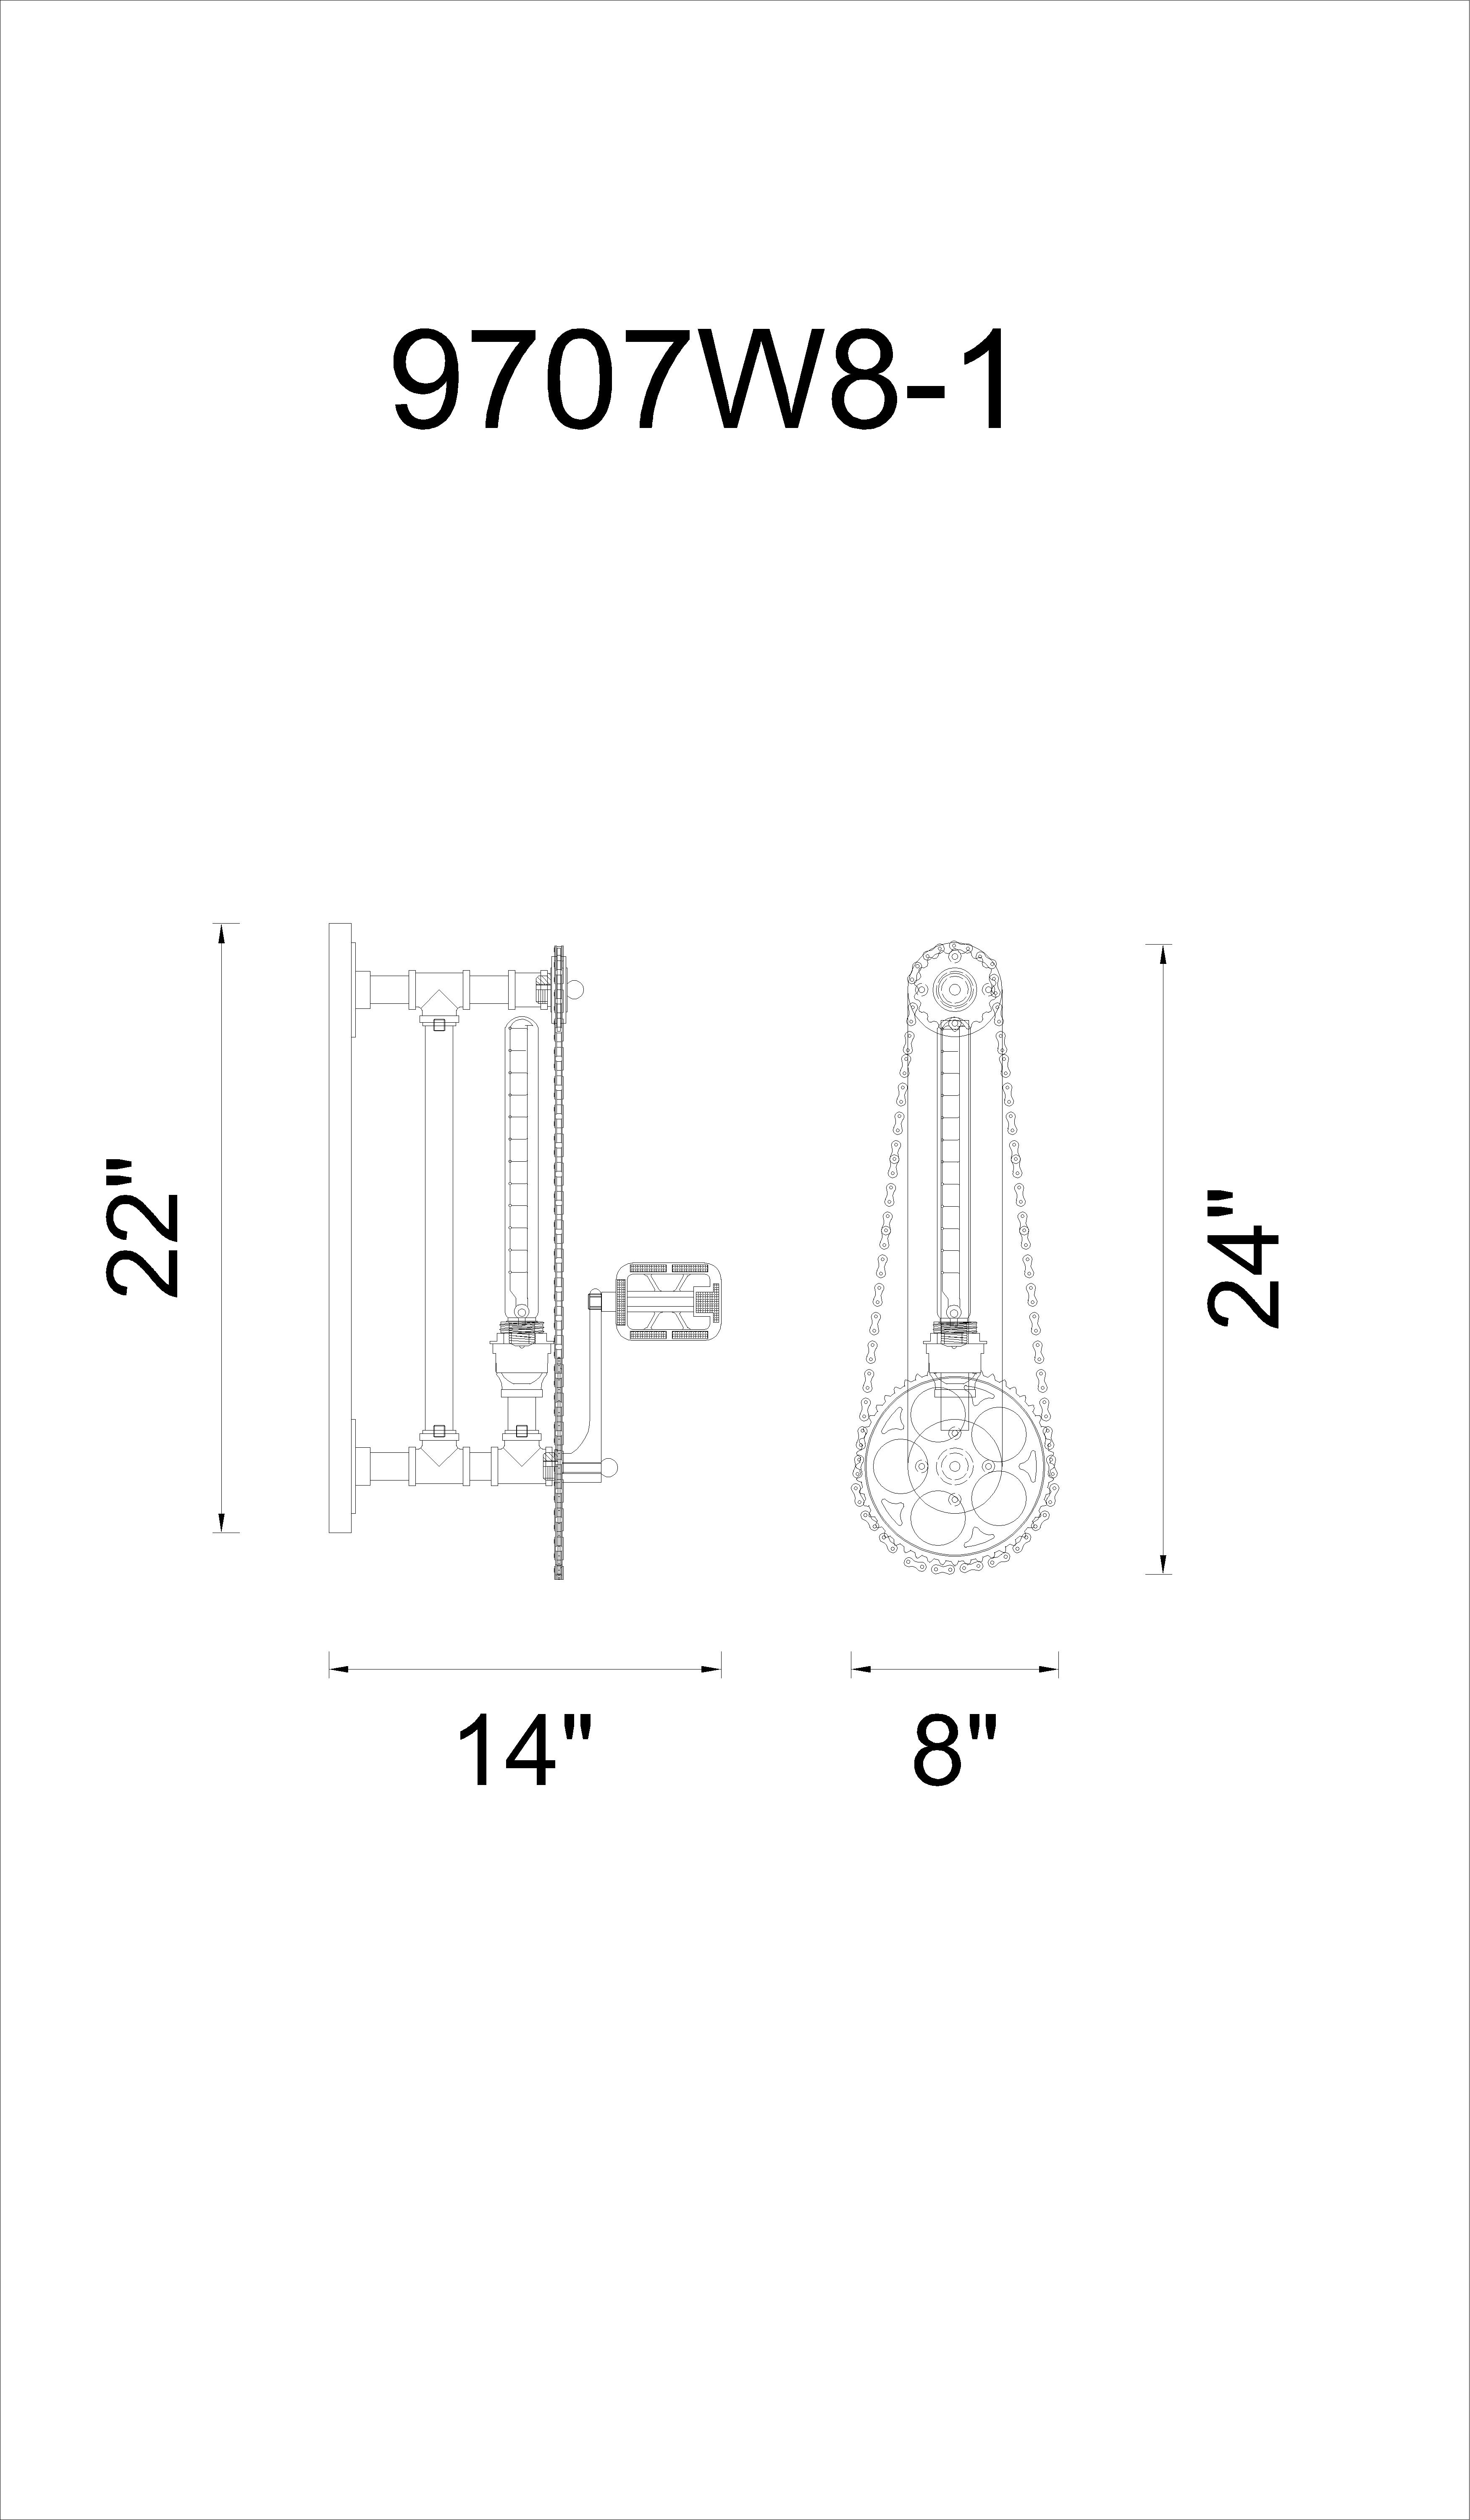 CWI Lighting Bici 1 Light Wall Sconce With Silver Gray Finish Model: 9707W8-187 Line Drawing